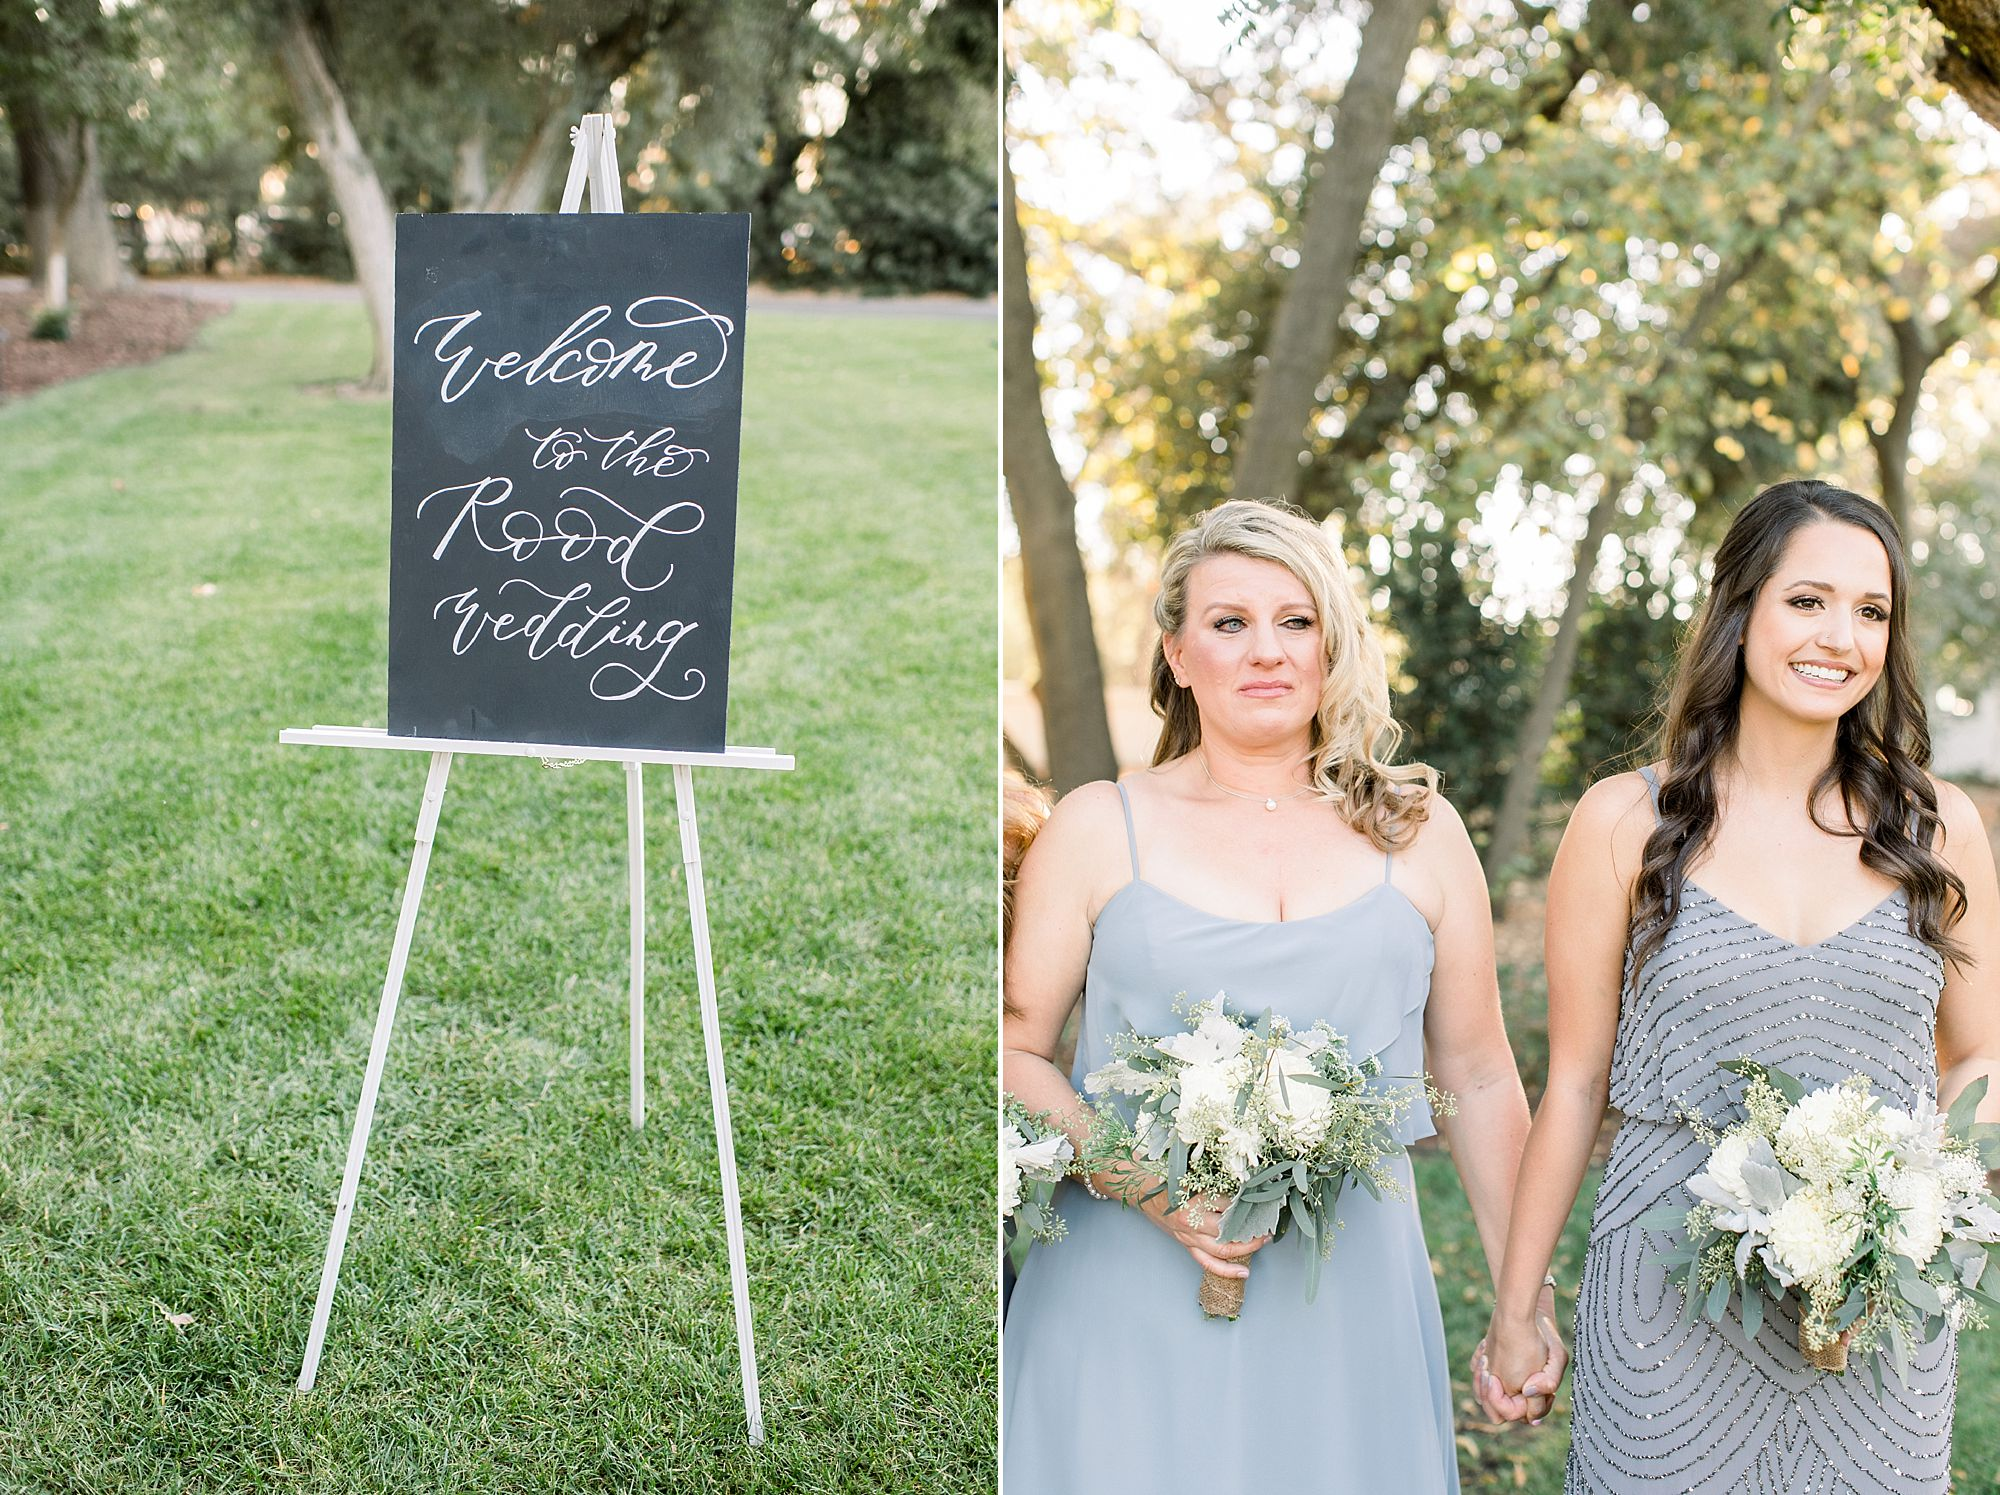 The Maples Wedding in Woodland California - Ashley Baumgartner - Sacramento Wedding Photographer - Sacramento Film Photographer_0034.jpg